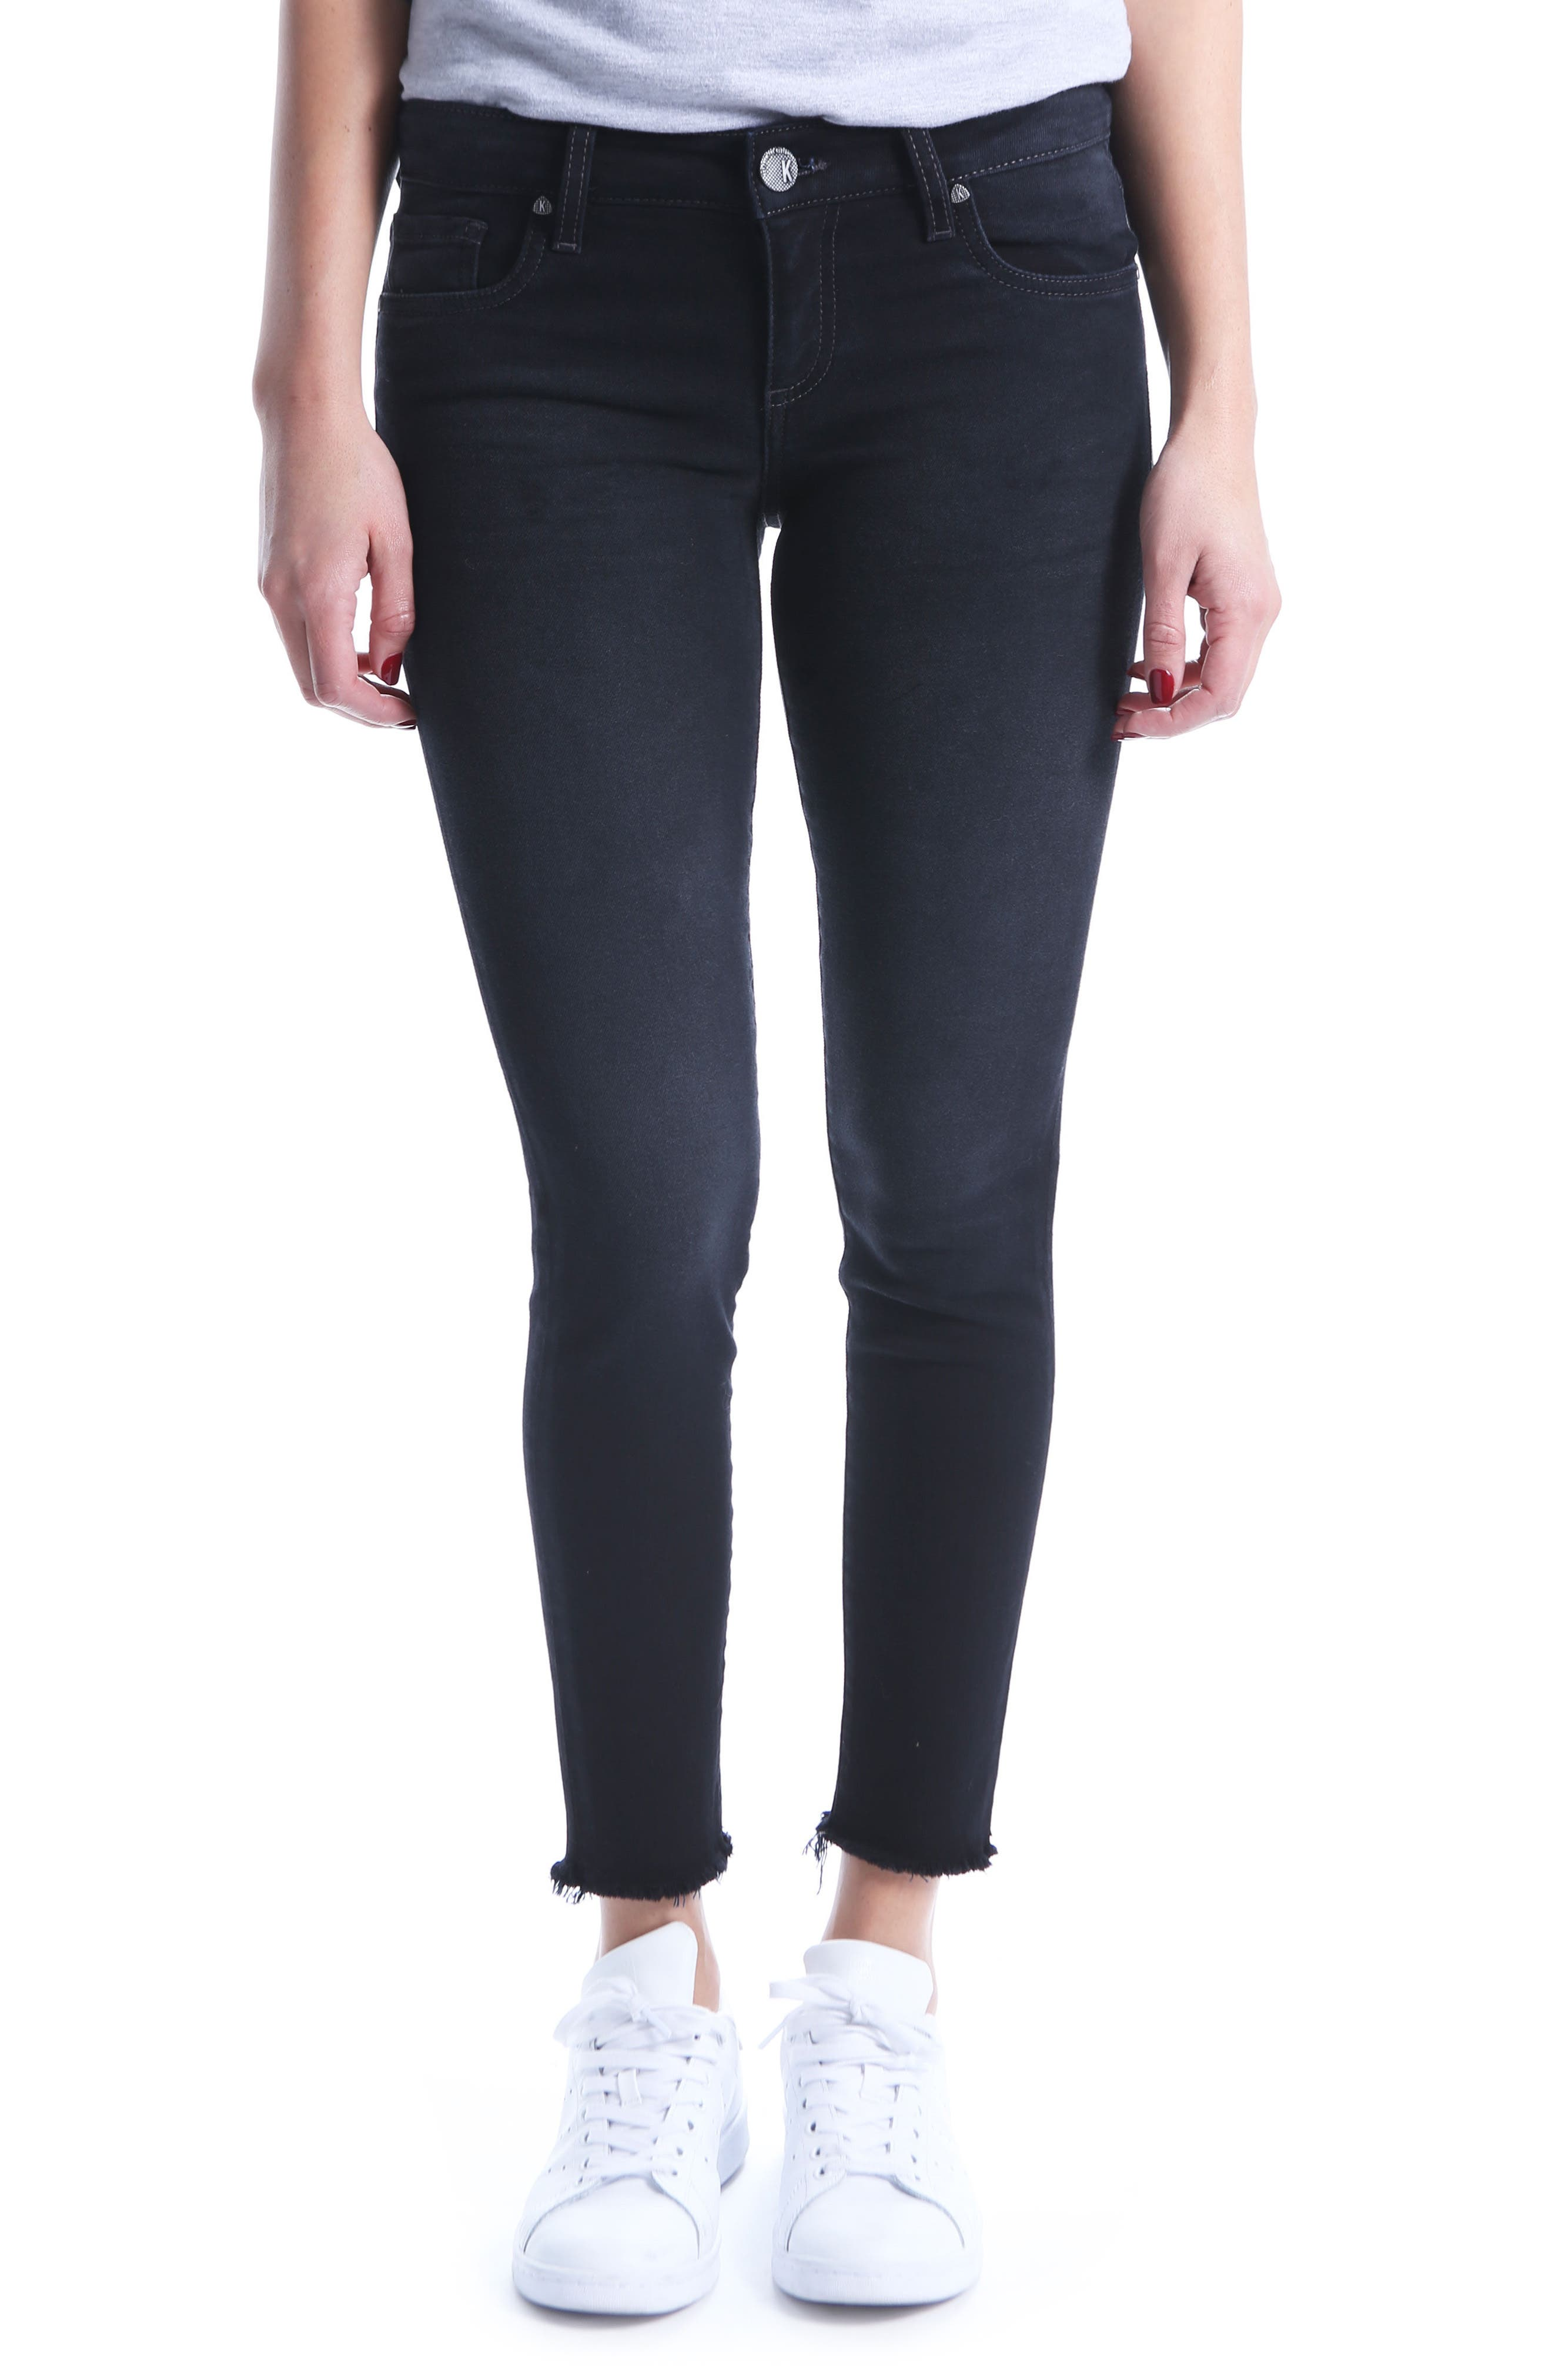 KUT FROM THE KLOTH,                             Donna Ankle Skinny Jeans,                             Main thumbnail 1, color,                             001